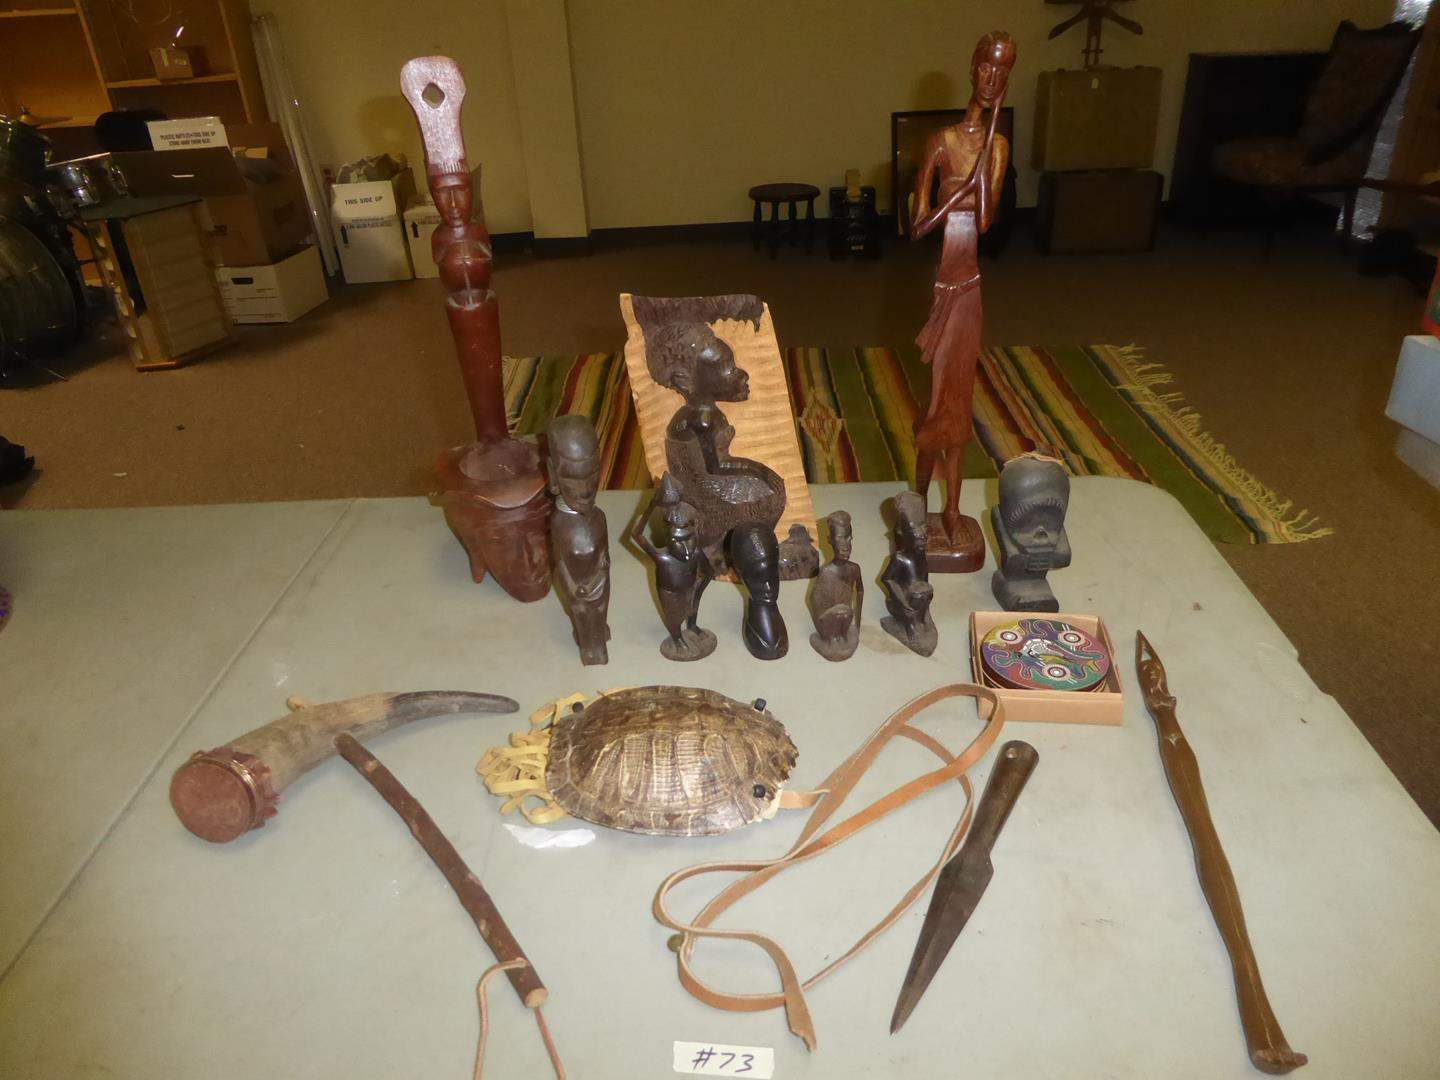 Lot # 73 - Primitive Weapons, Turtle Purse, Philippines & Taiwan Carved Wooden Sculptures (main image)